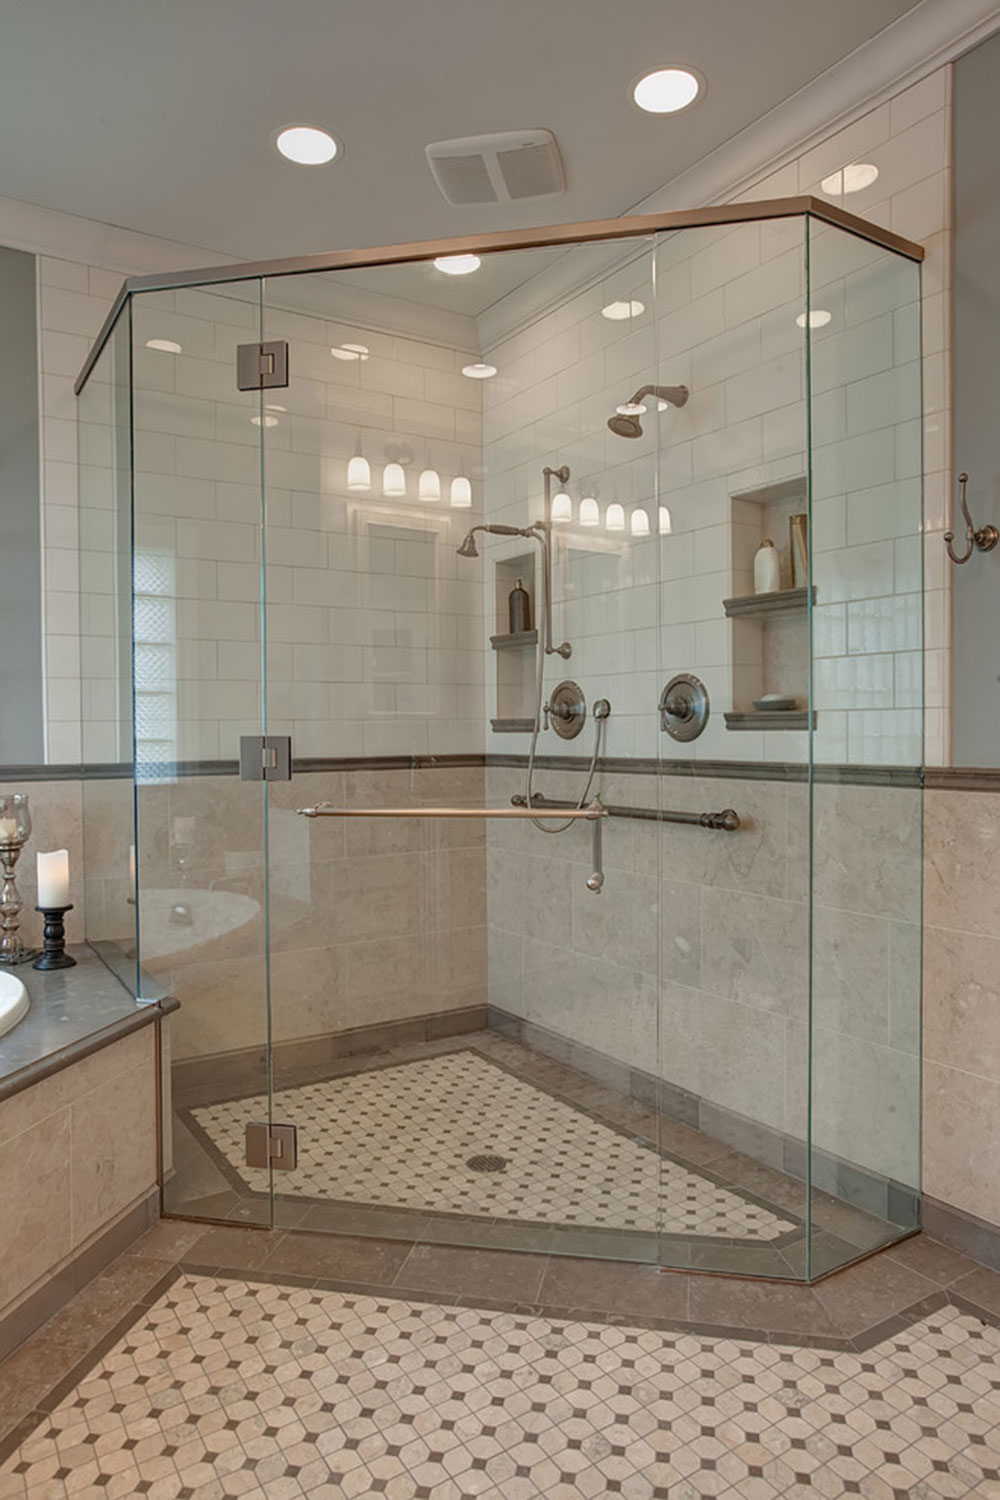 Chena-Master-Suite-von-Bauer-Clifton-Interiors How to clean the shower floor and make it sparkling clean